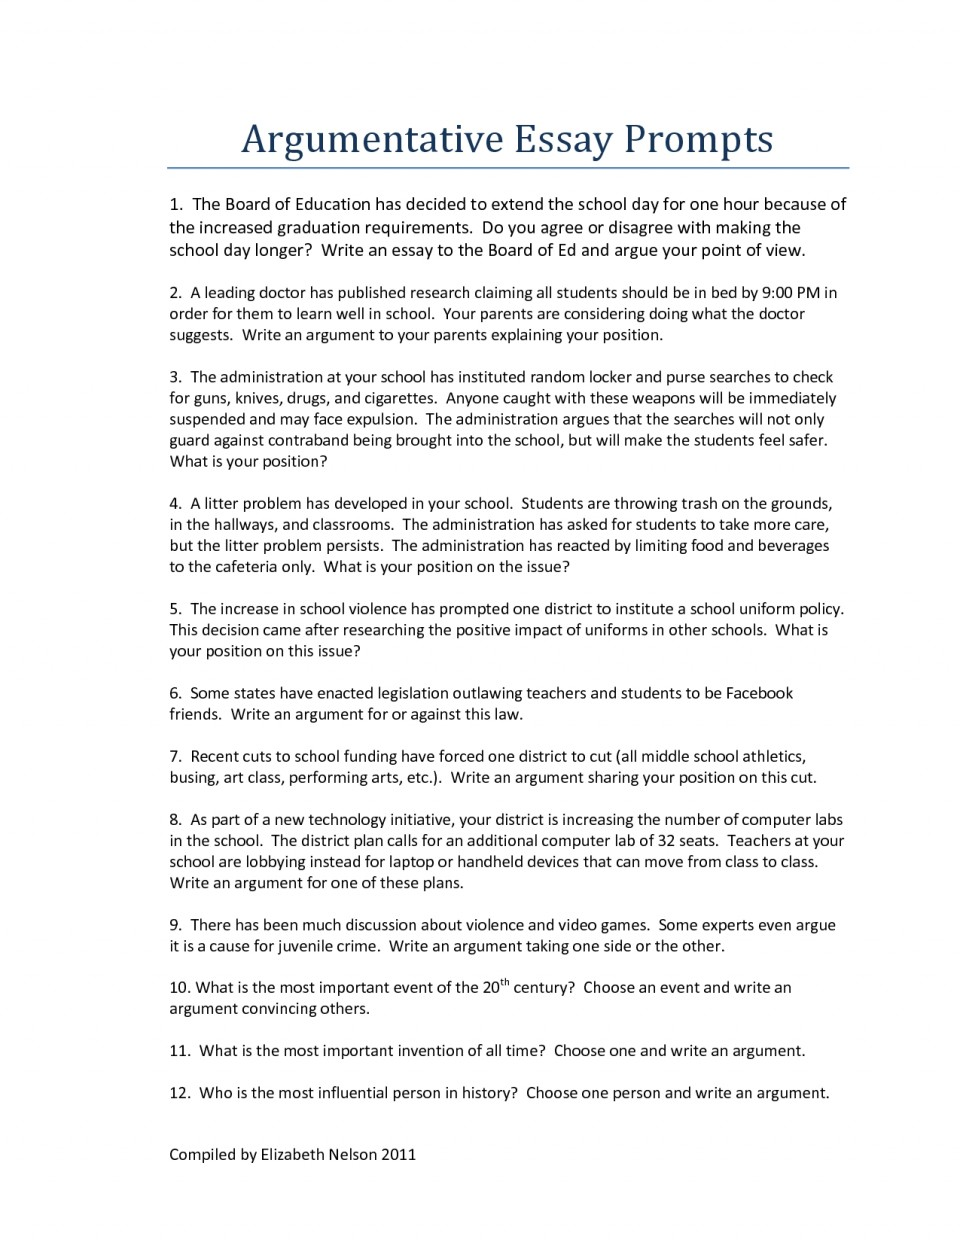 003 Essays For Middle School Argumentative Essay Topics Writings And Informative Good Persuasive High Argument W To Write About List Science Paper Expository Shocking Writing Leadership Students 960